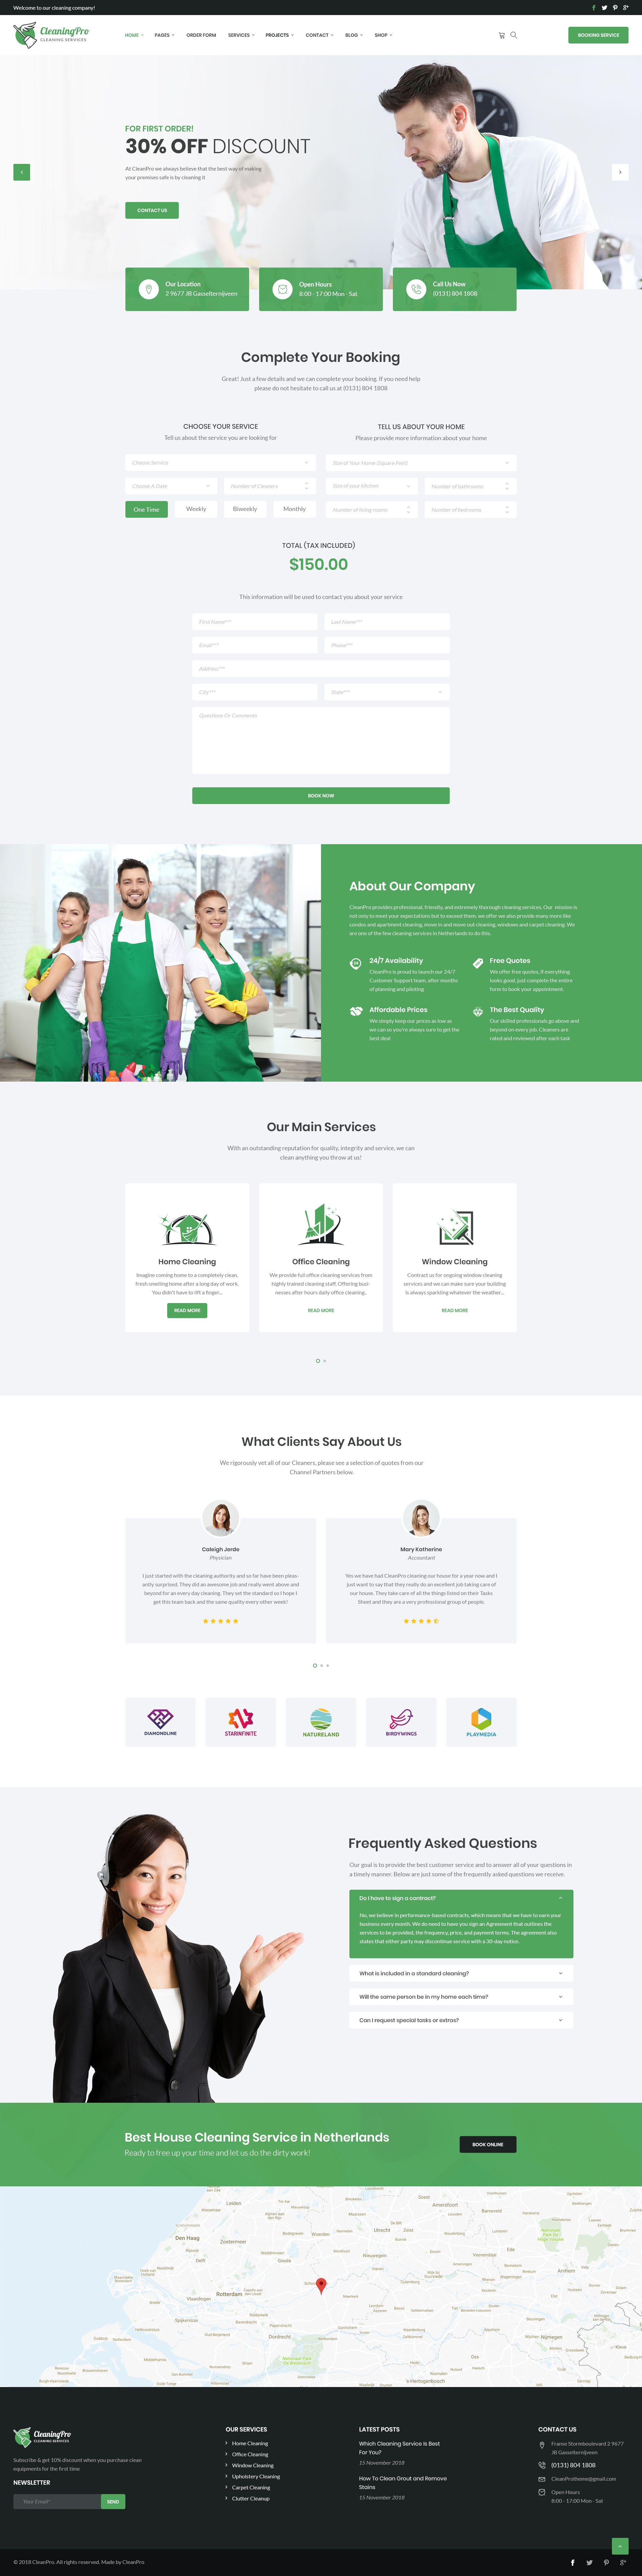 Cleanpro Cleaning Service Psd Template By Carrotlabs Themeforest Web Design Webdesign Design